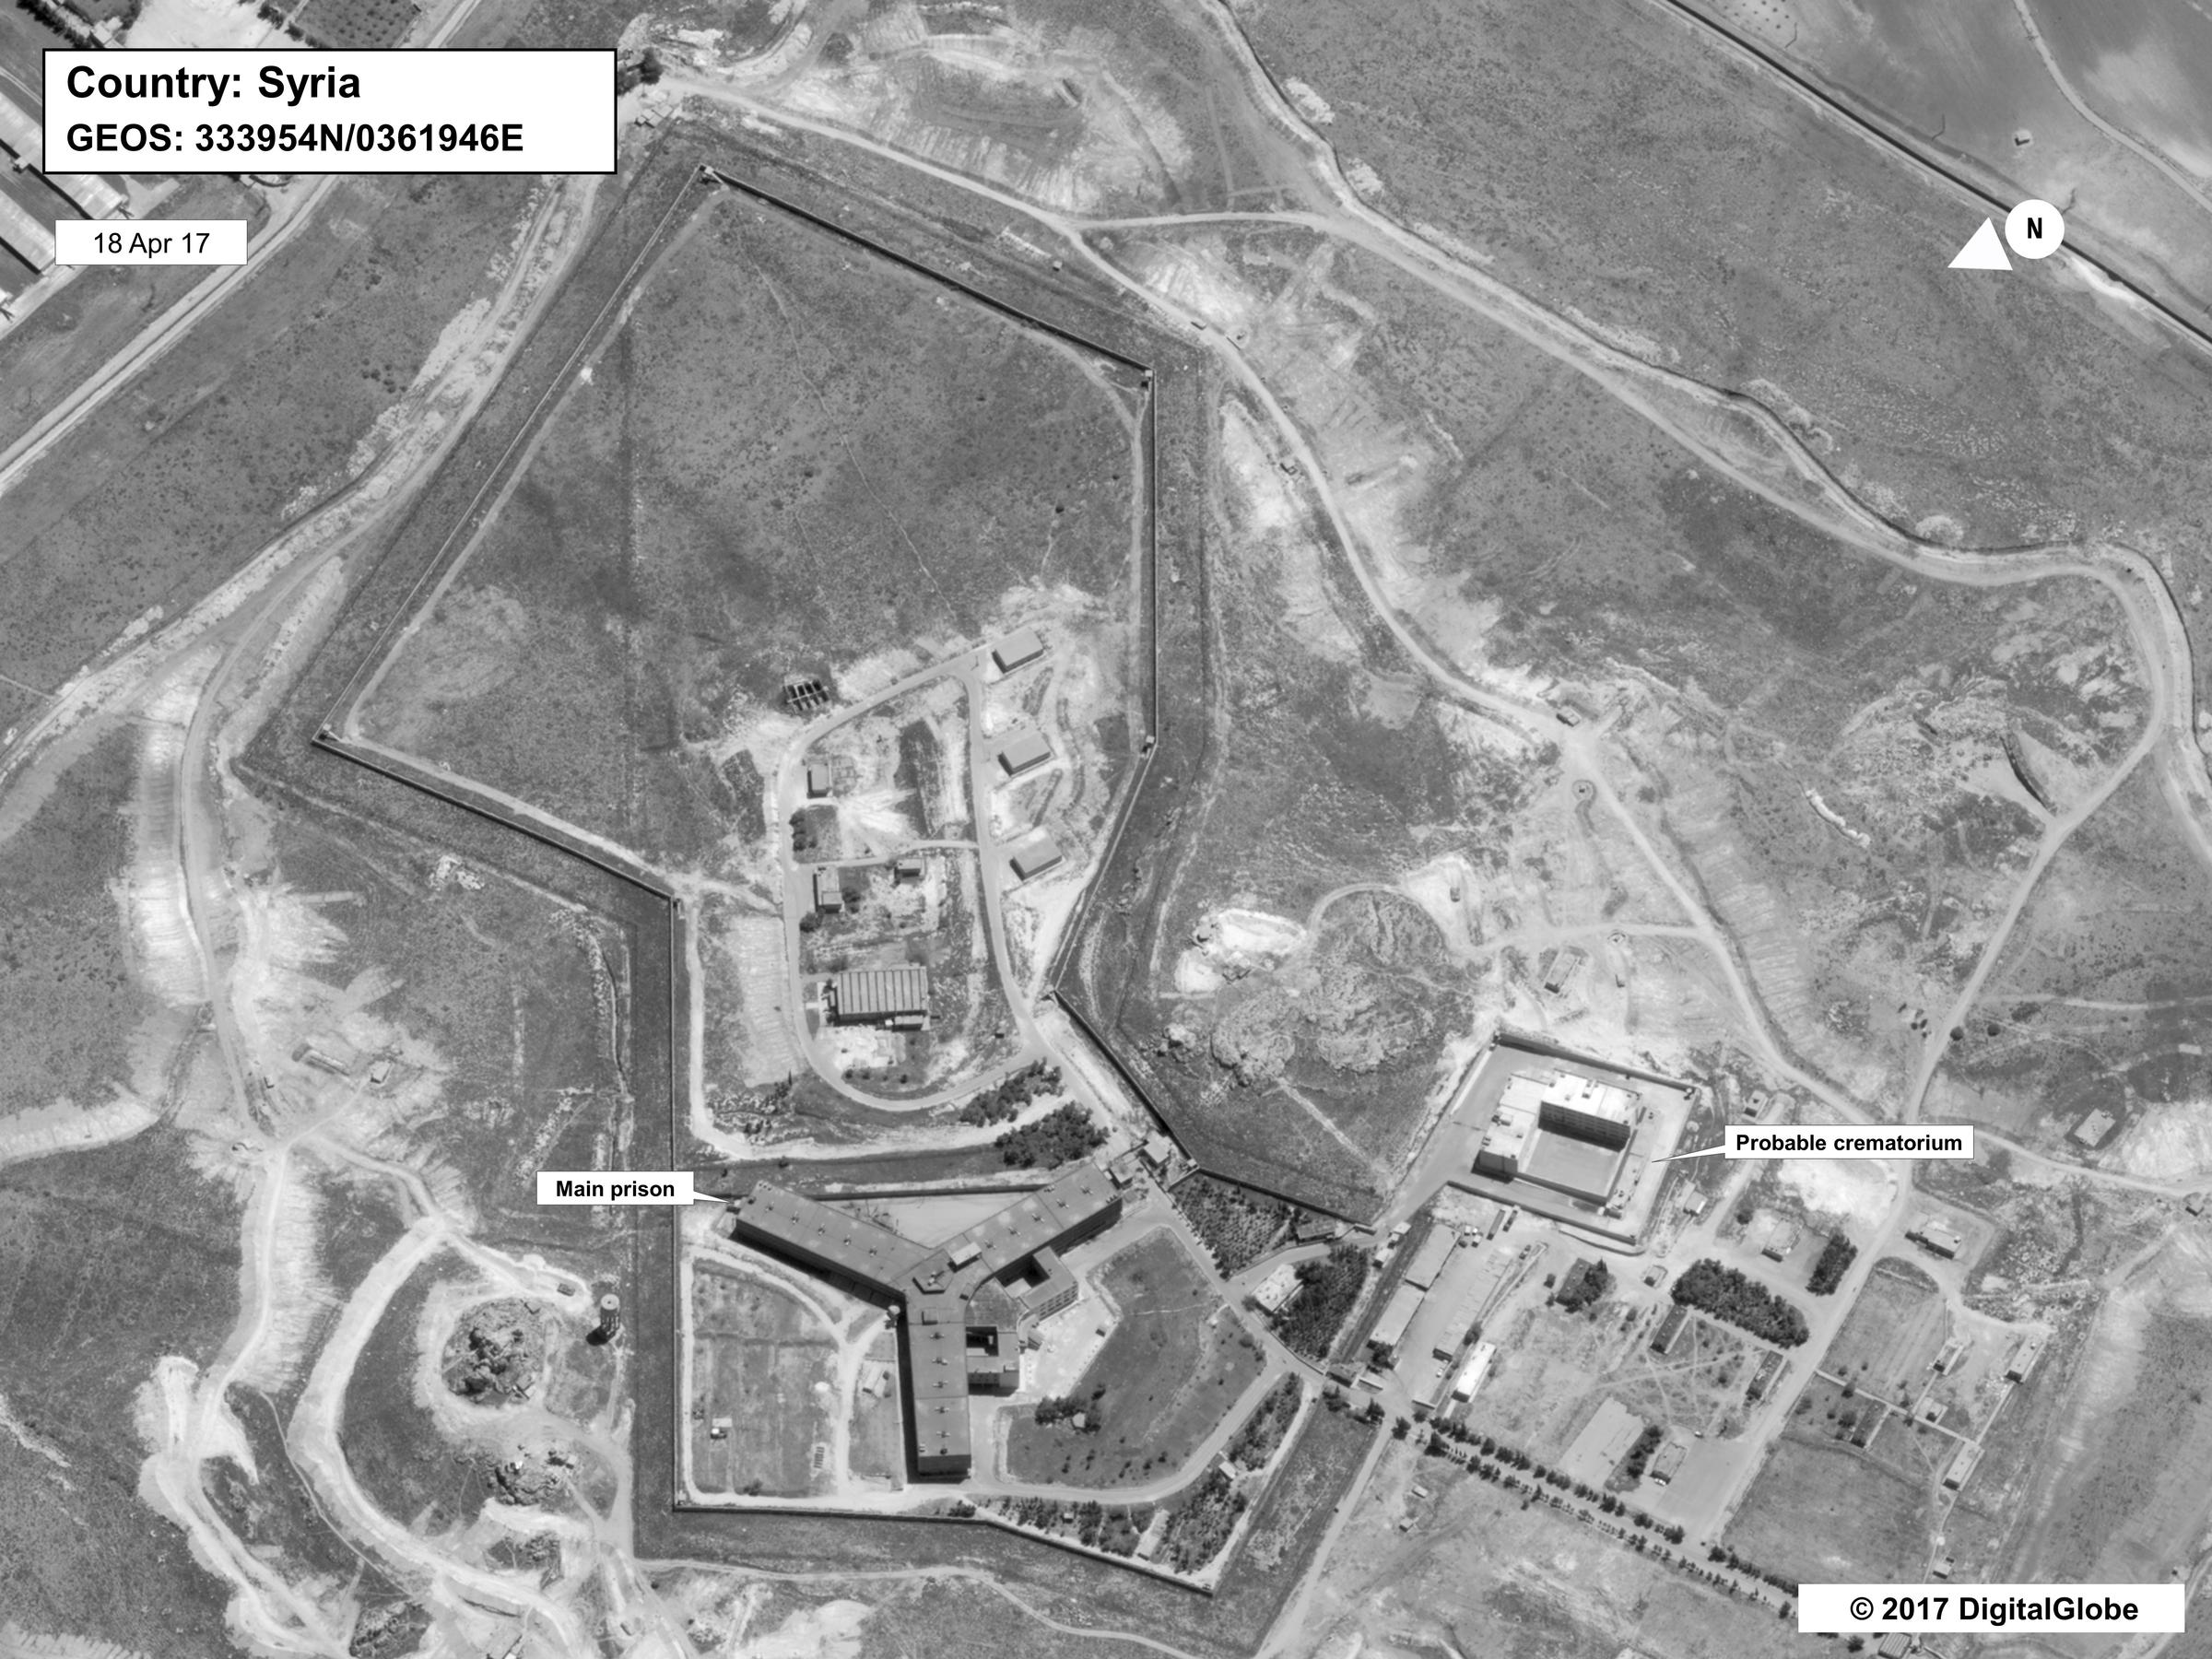 U.S. accuses Assad of mass atrocities at Syrian prison